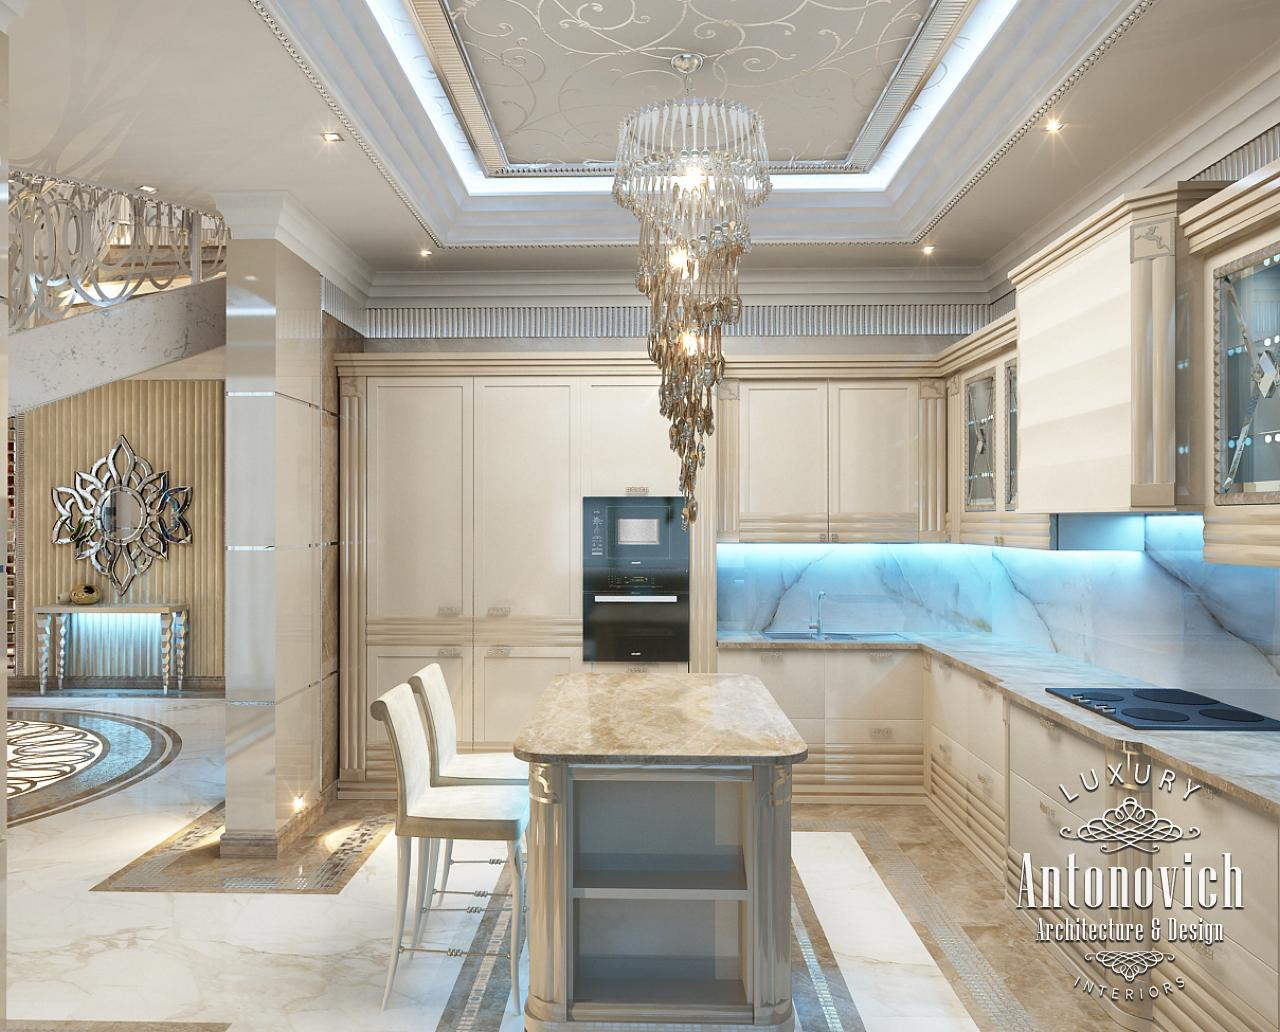 Luxury Antonovich Design Uae Luxury Interior Design Dubai